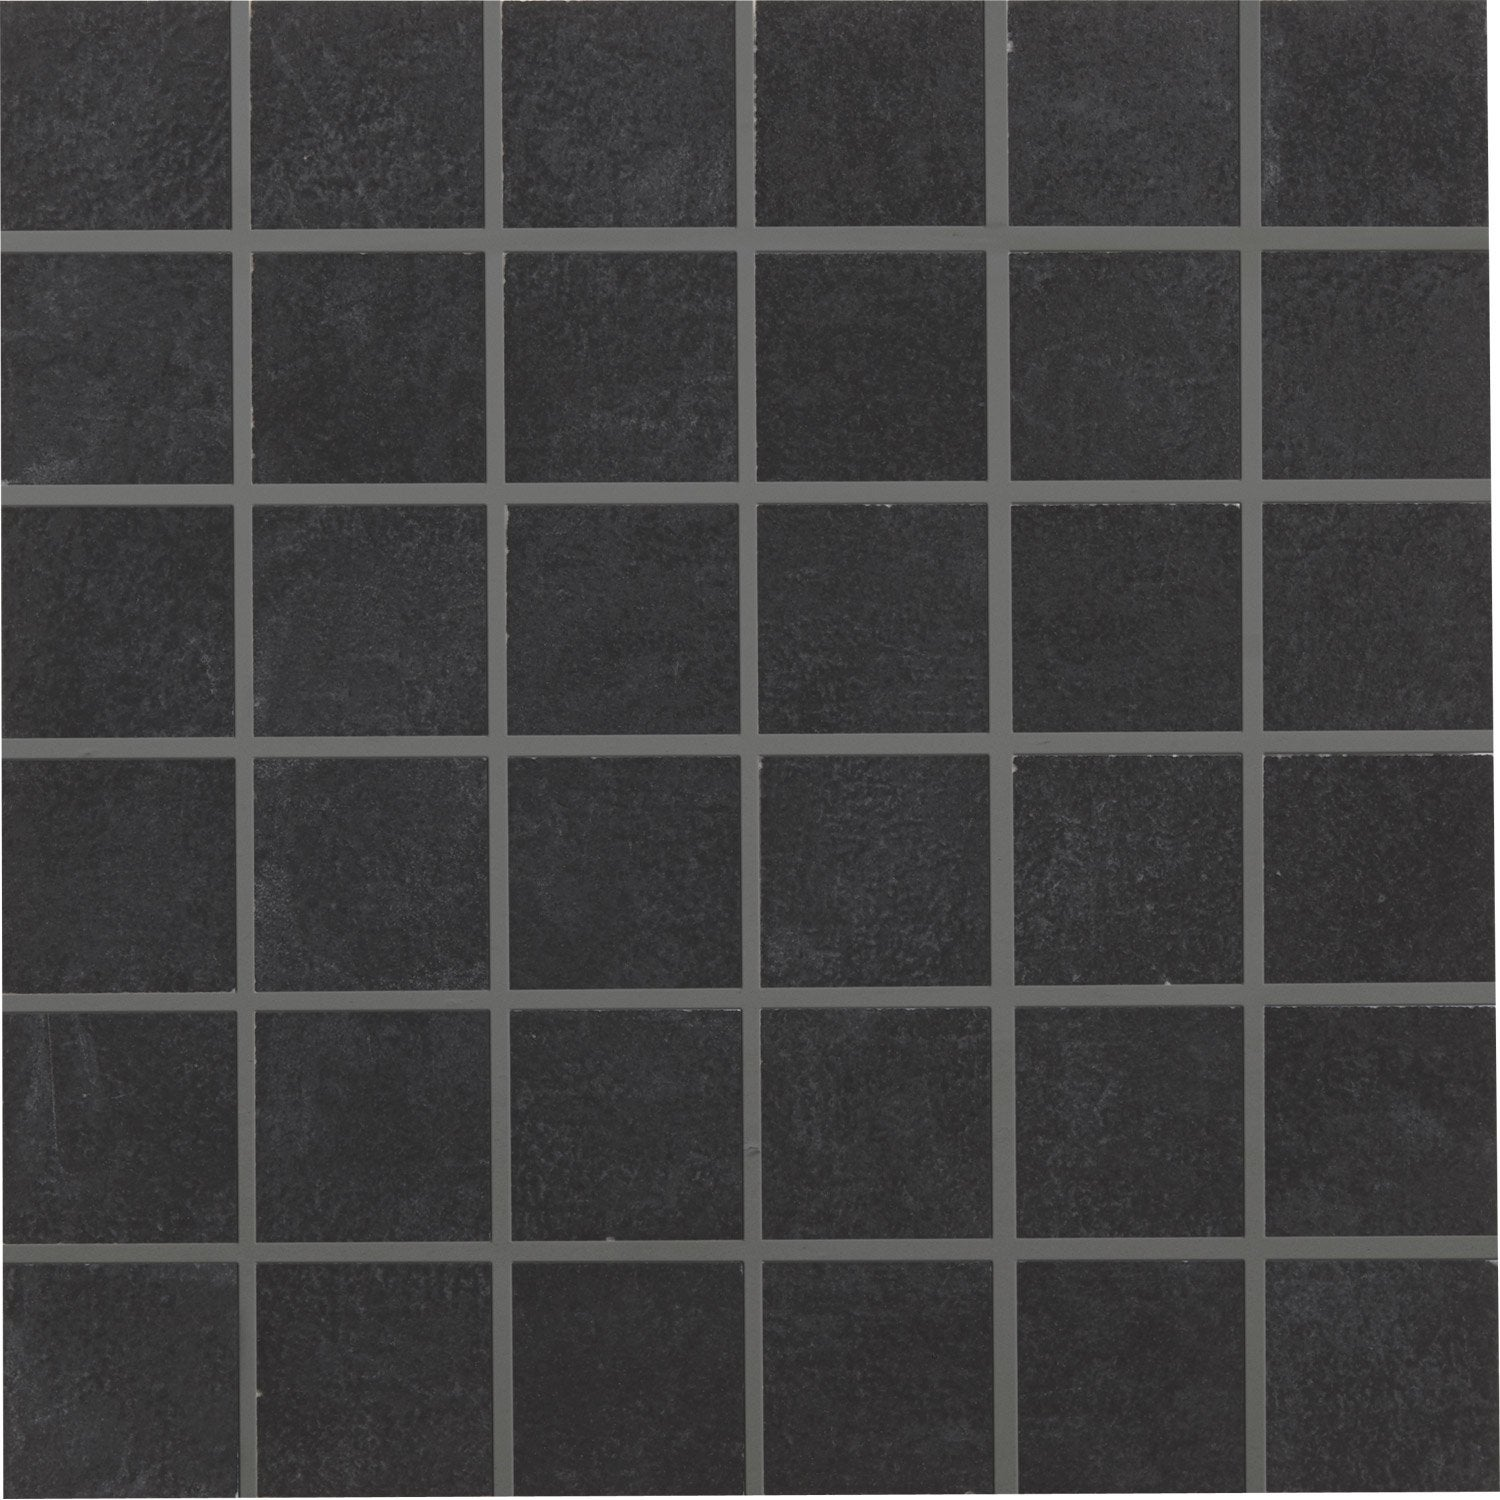 Carrelage 5x5 noir for Carrelage noir mat